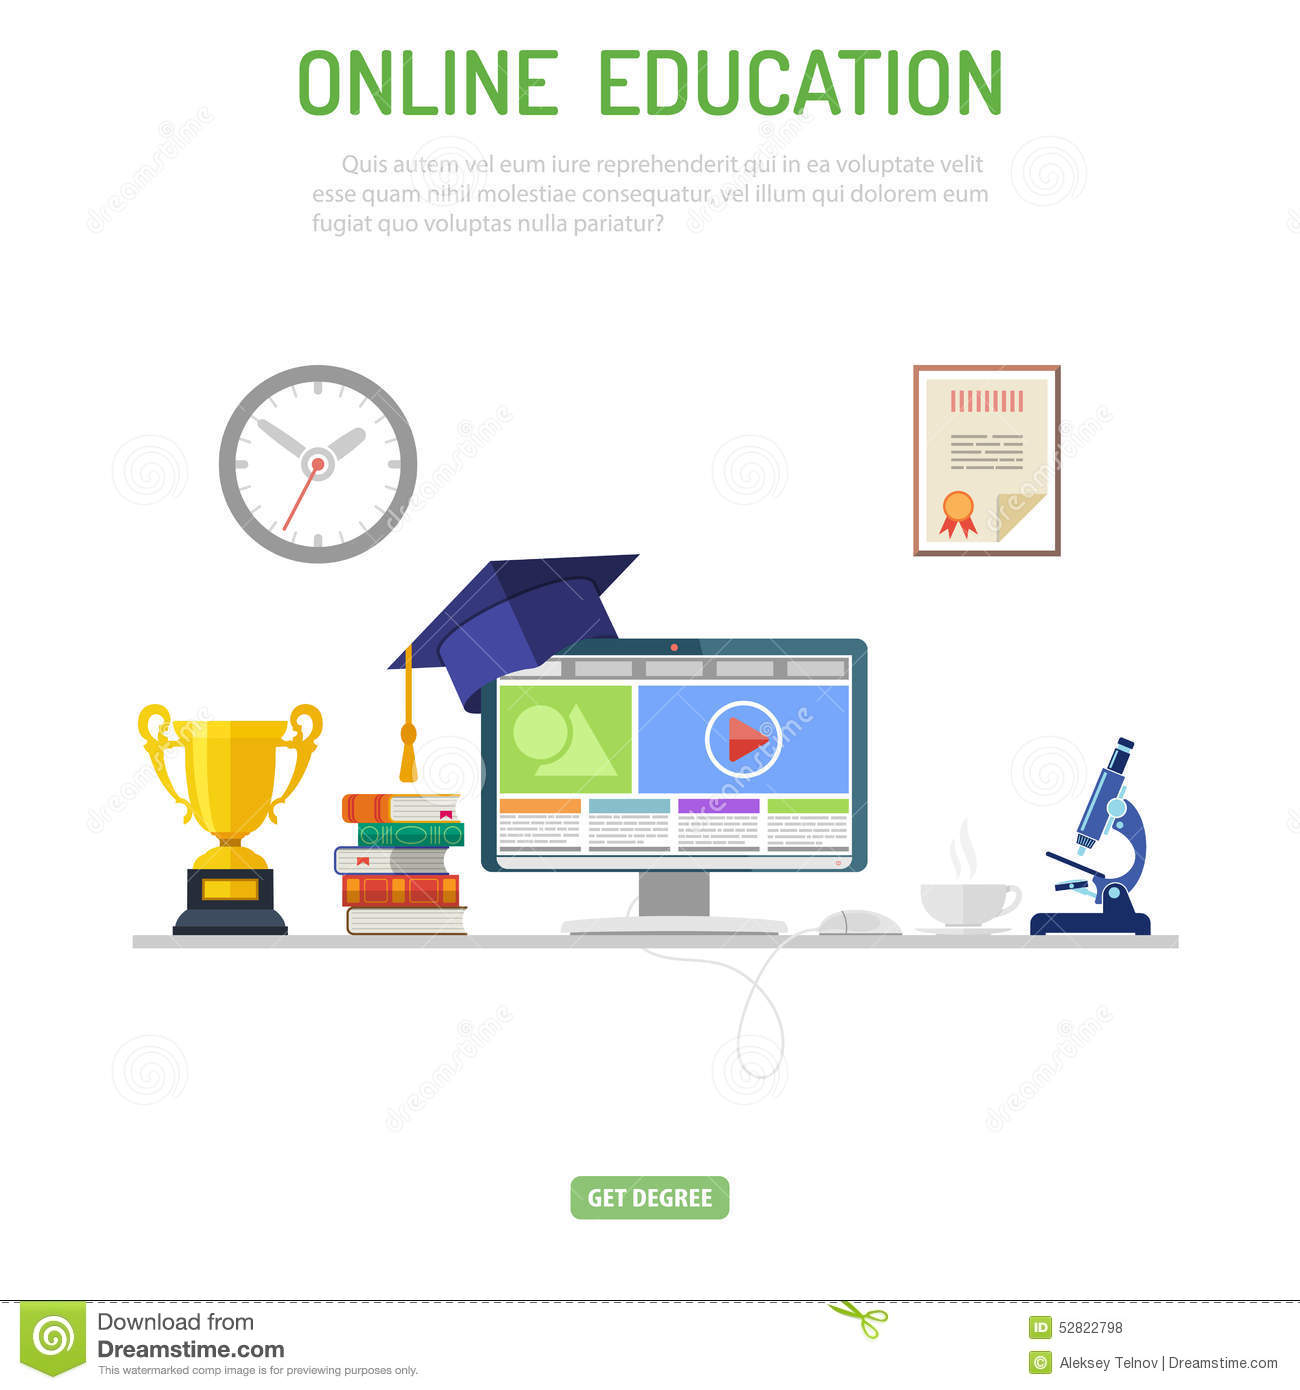 Online Education Concept Stock Vector - Image: 52822798